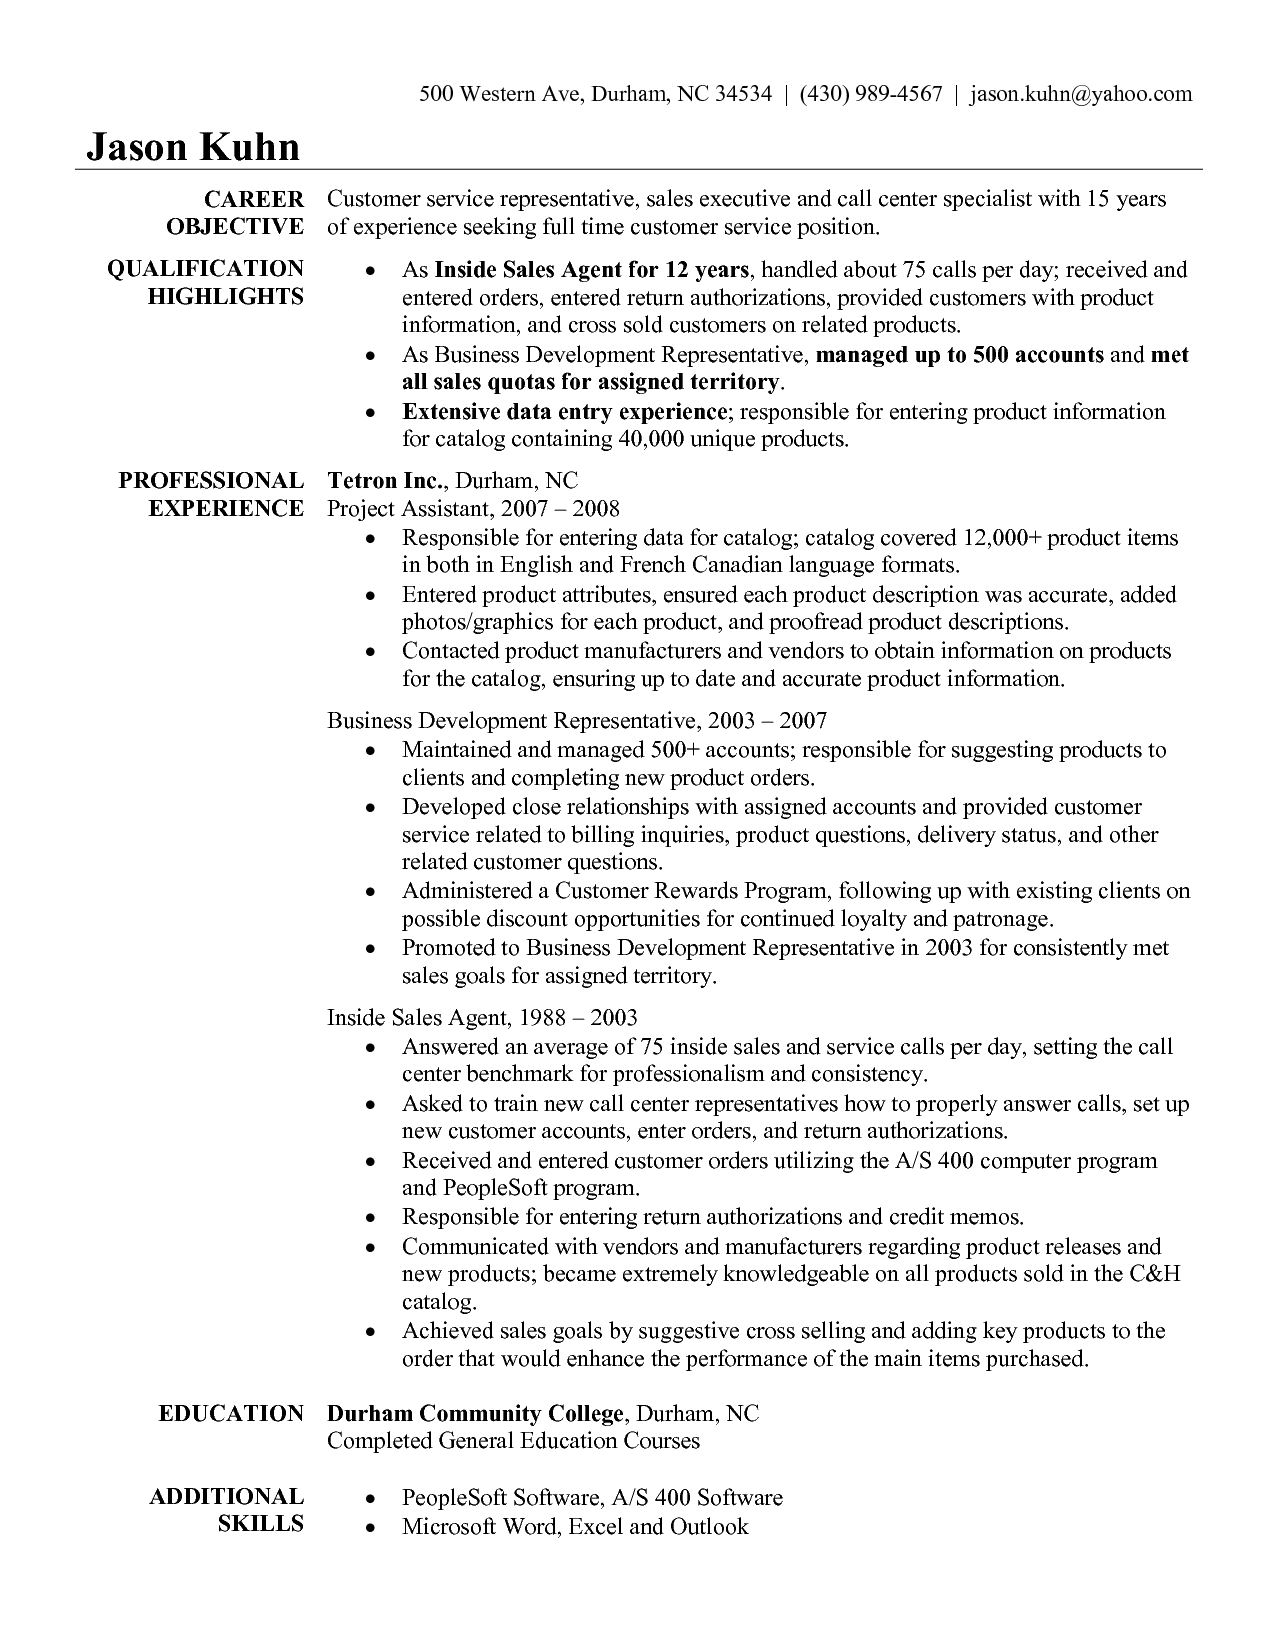 Good Sample Resume For Call Center Customer Service Representative    Commonpence.co